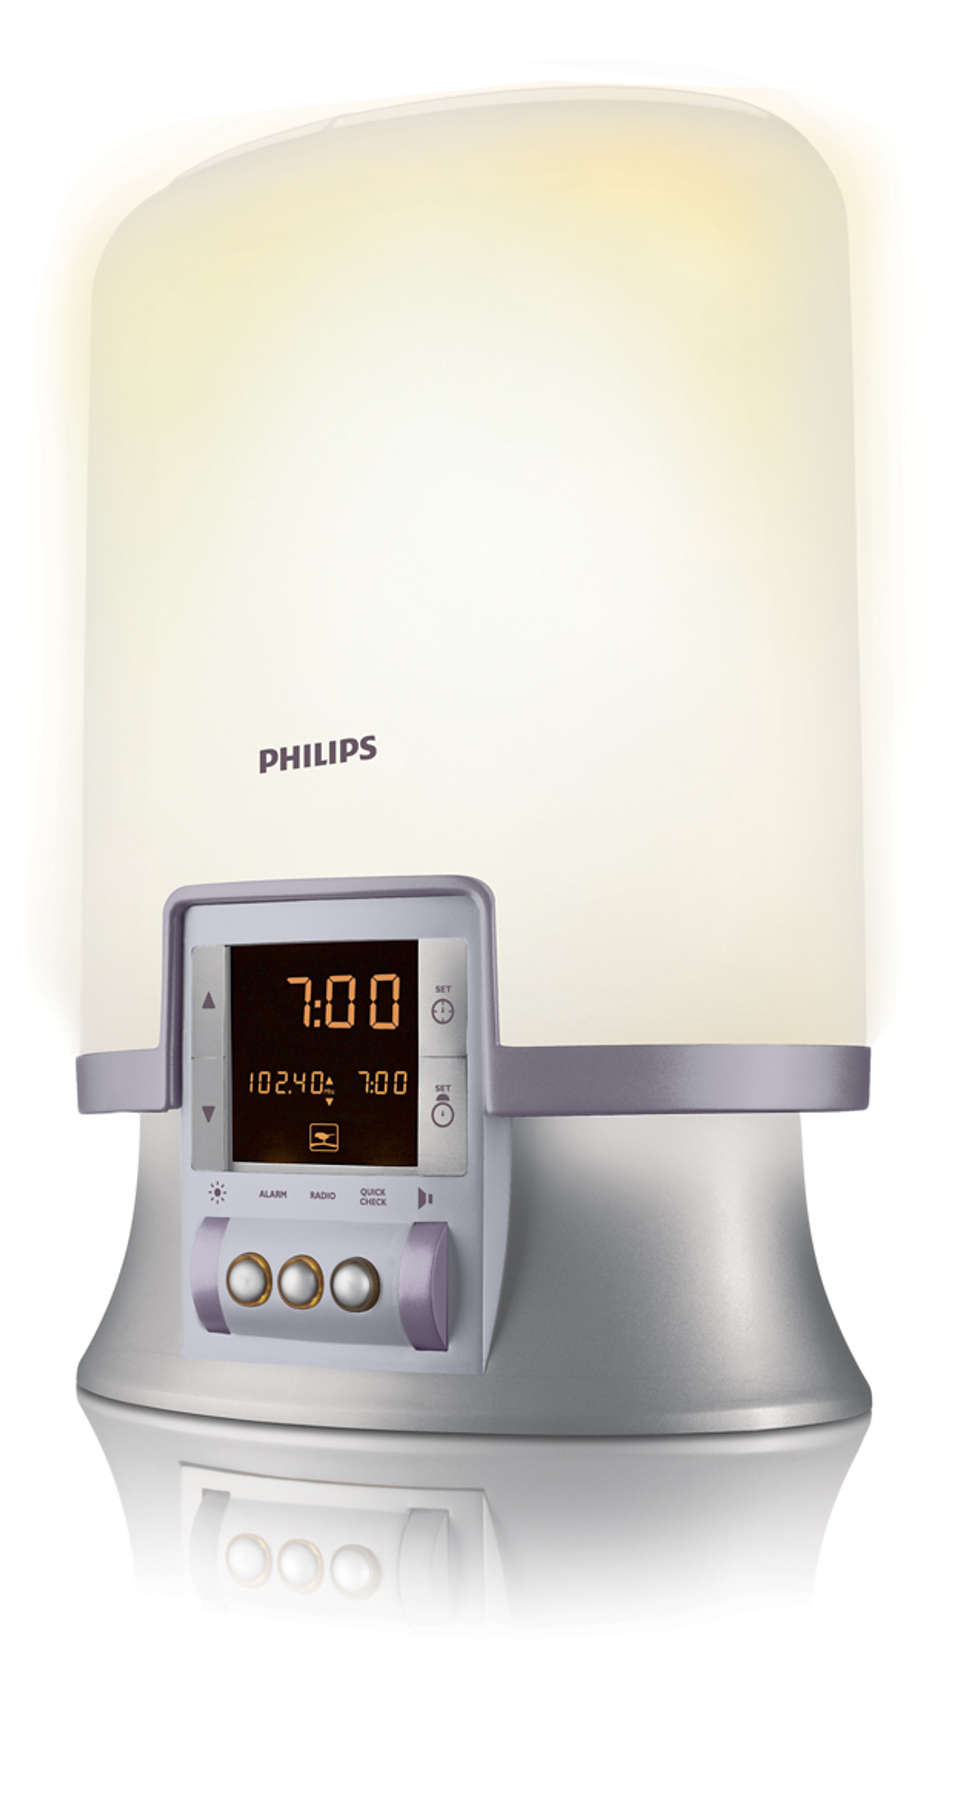 philips hue stromausfall alle lampen an